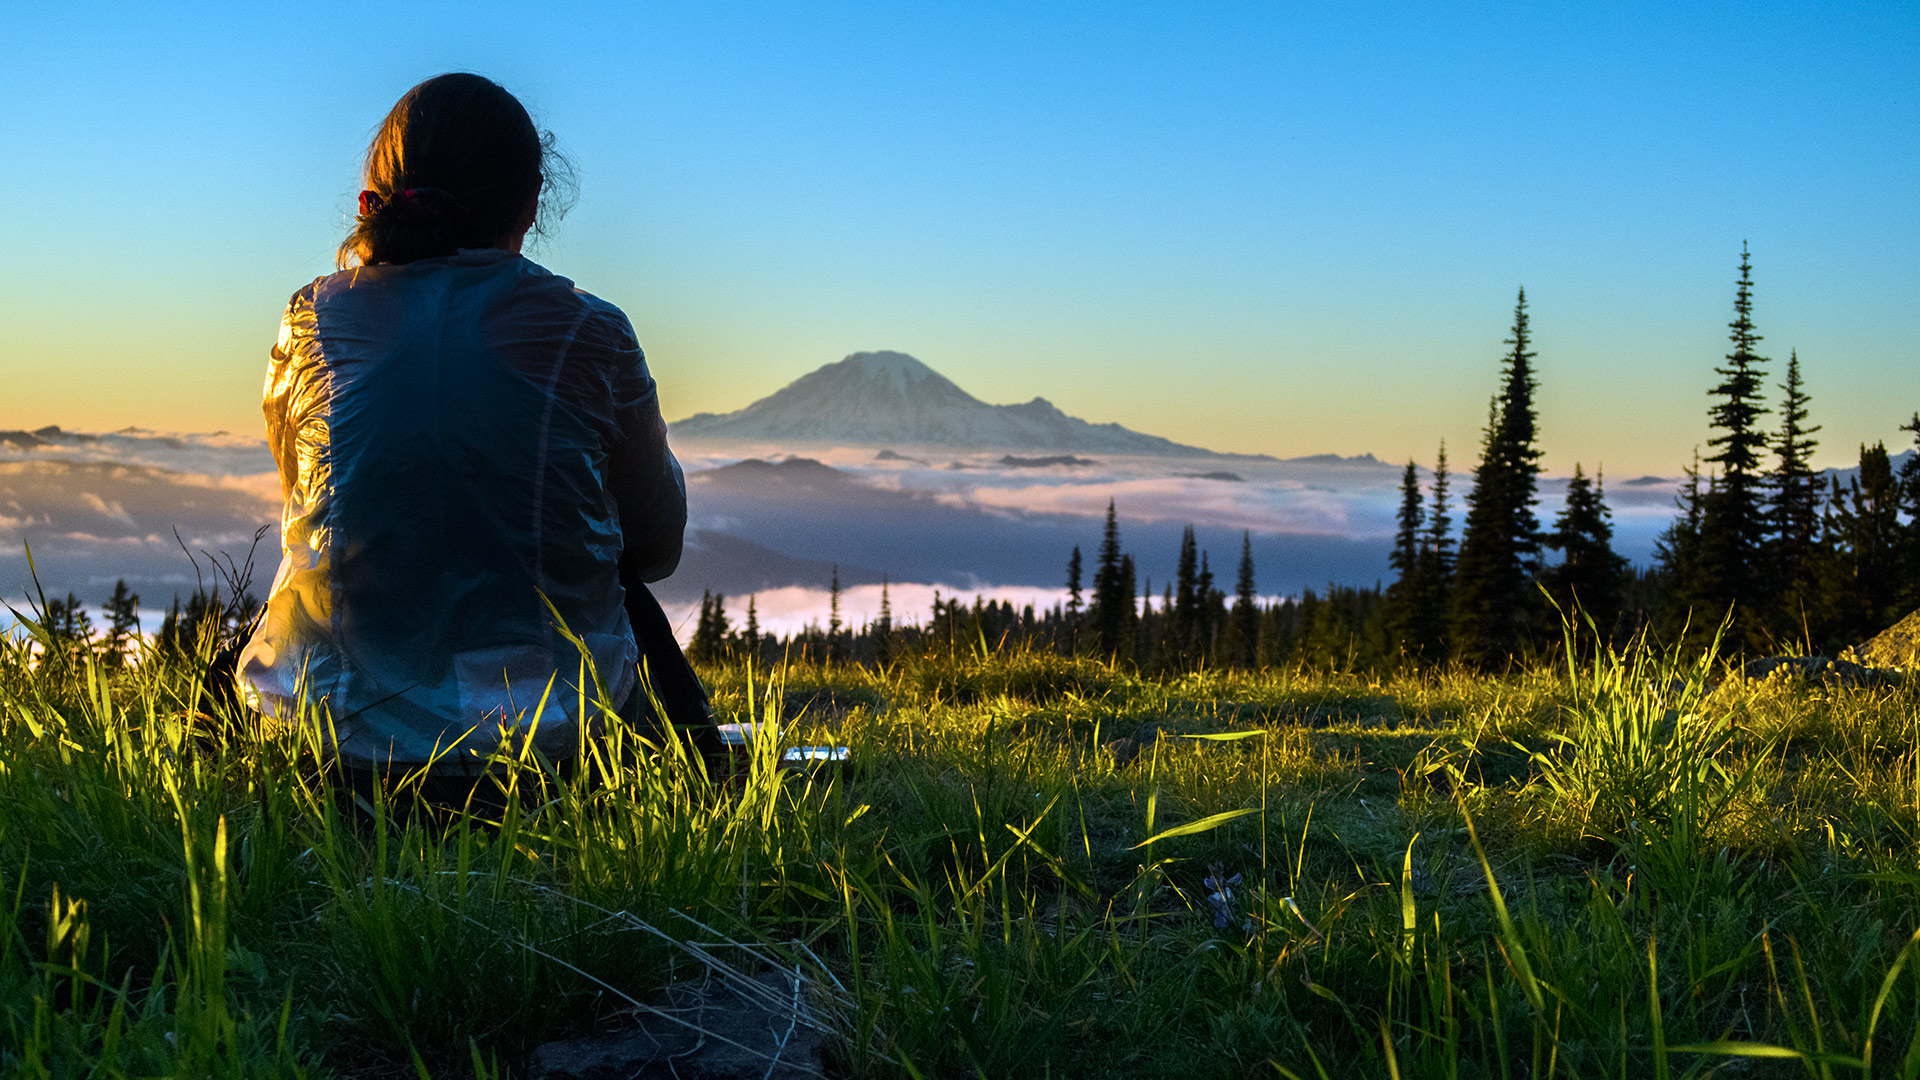 "Practice gratitude and kindness. Thousands will follow in your footsteps. ""CC' relaxes at the end of the day - enjoying the setting sun and view of Mt Rainier. Photo by Lisa Frugoli"